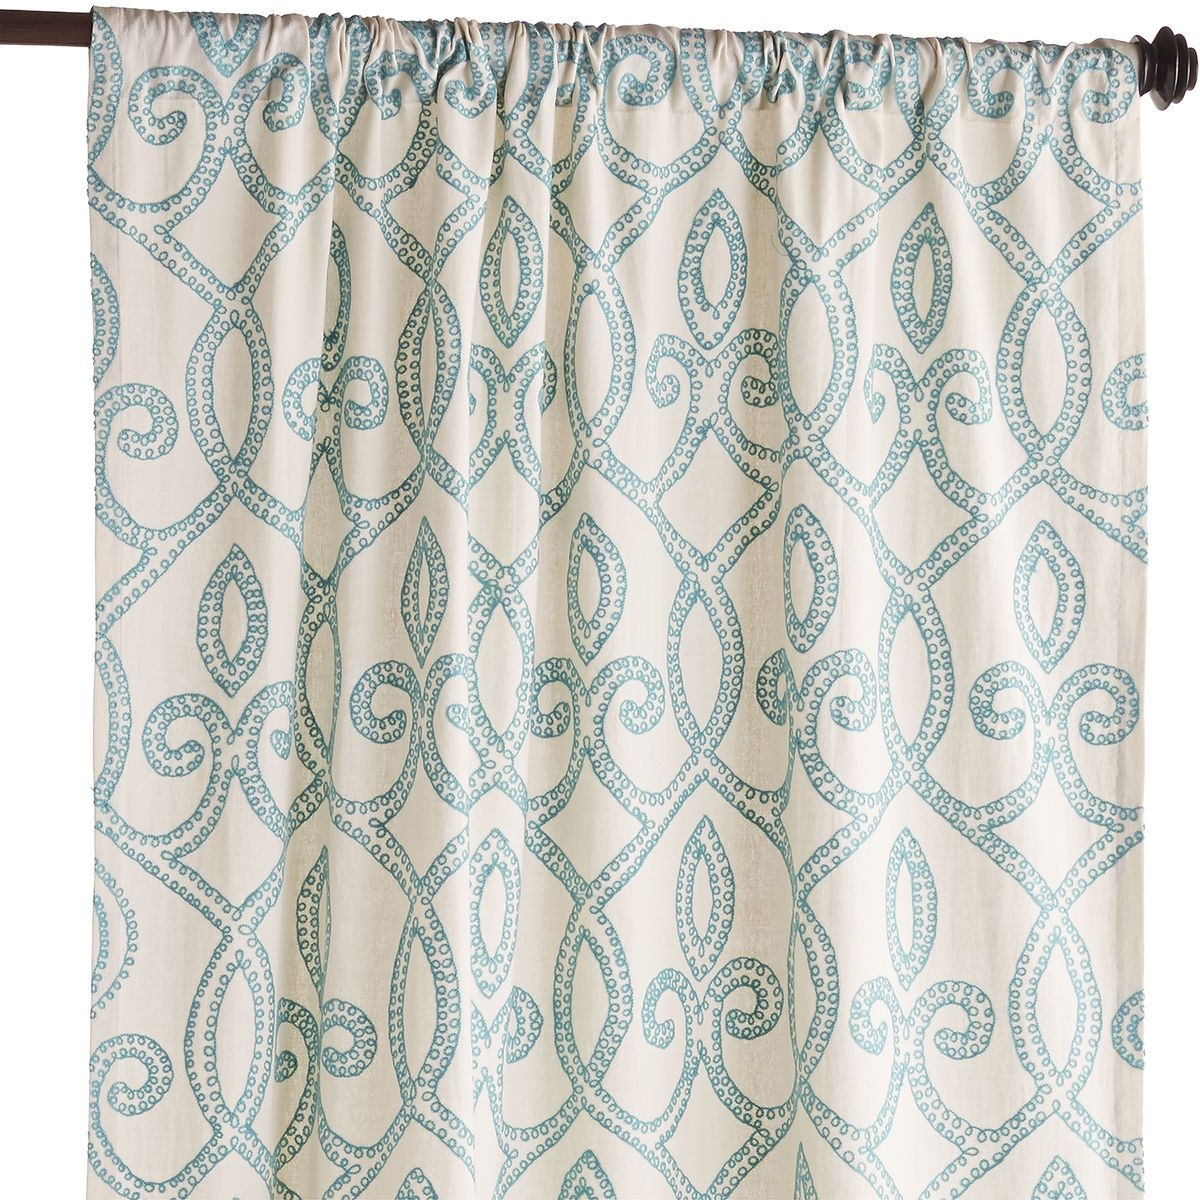 Turquoise Trellis Curtains Inside Turquoise Trellis Curtains (View 4 of 25)